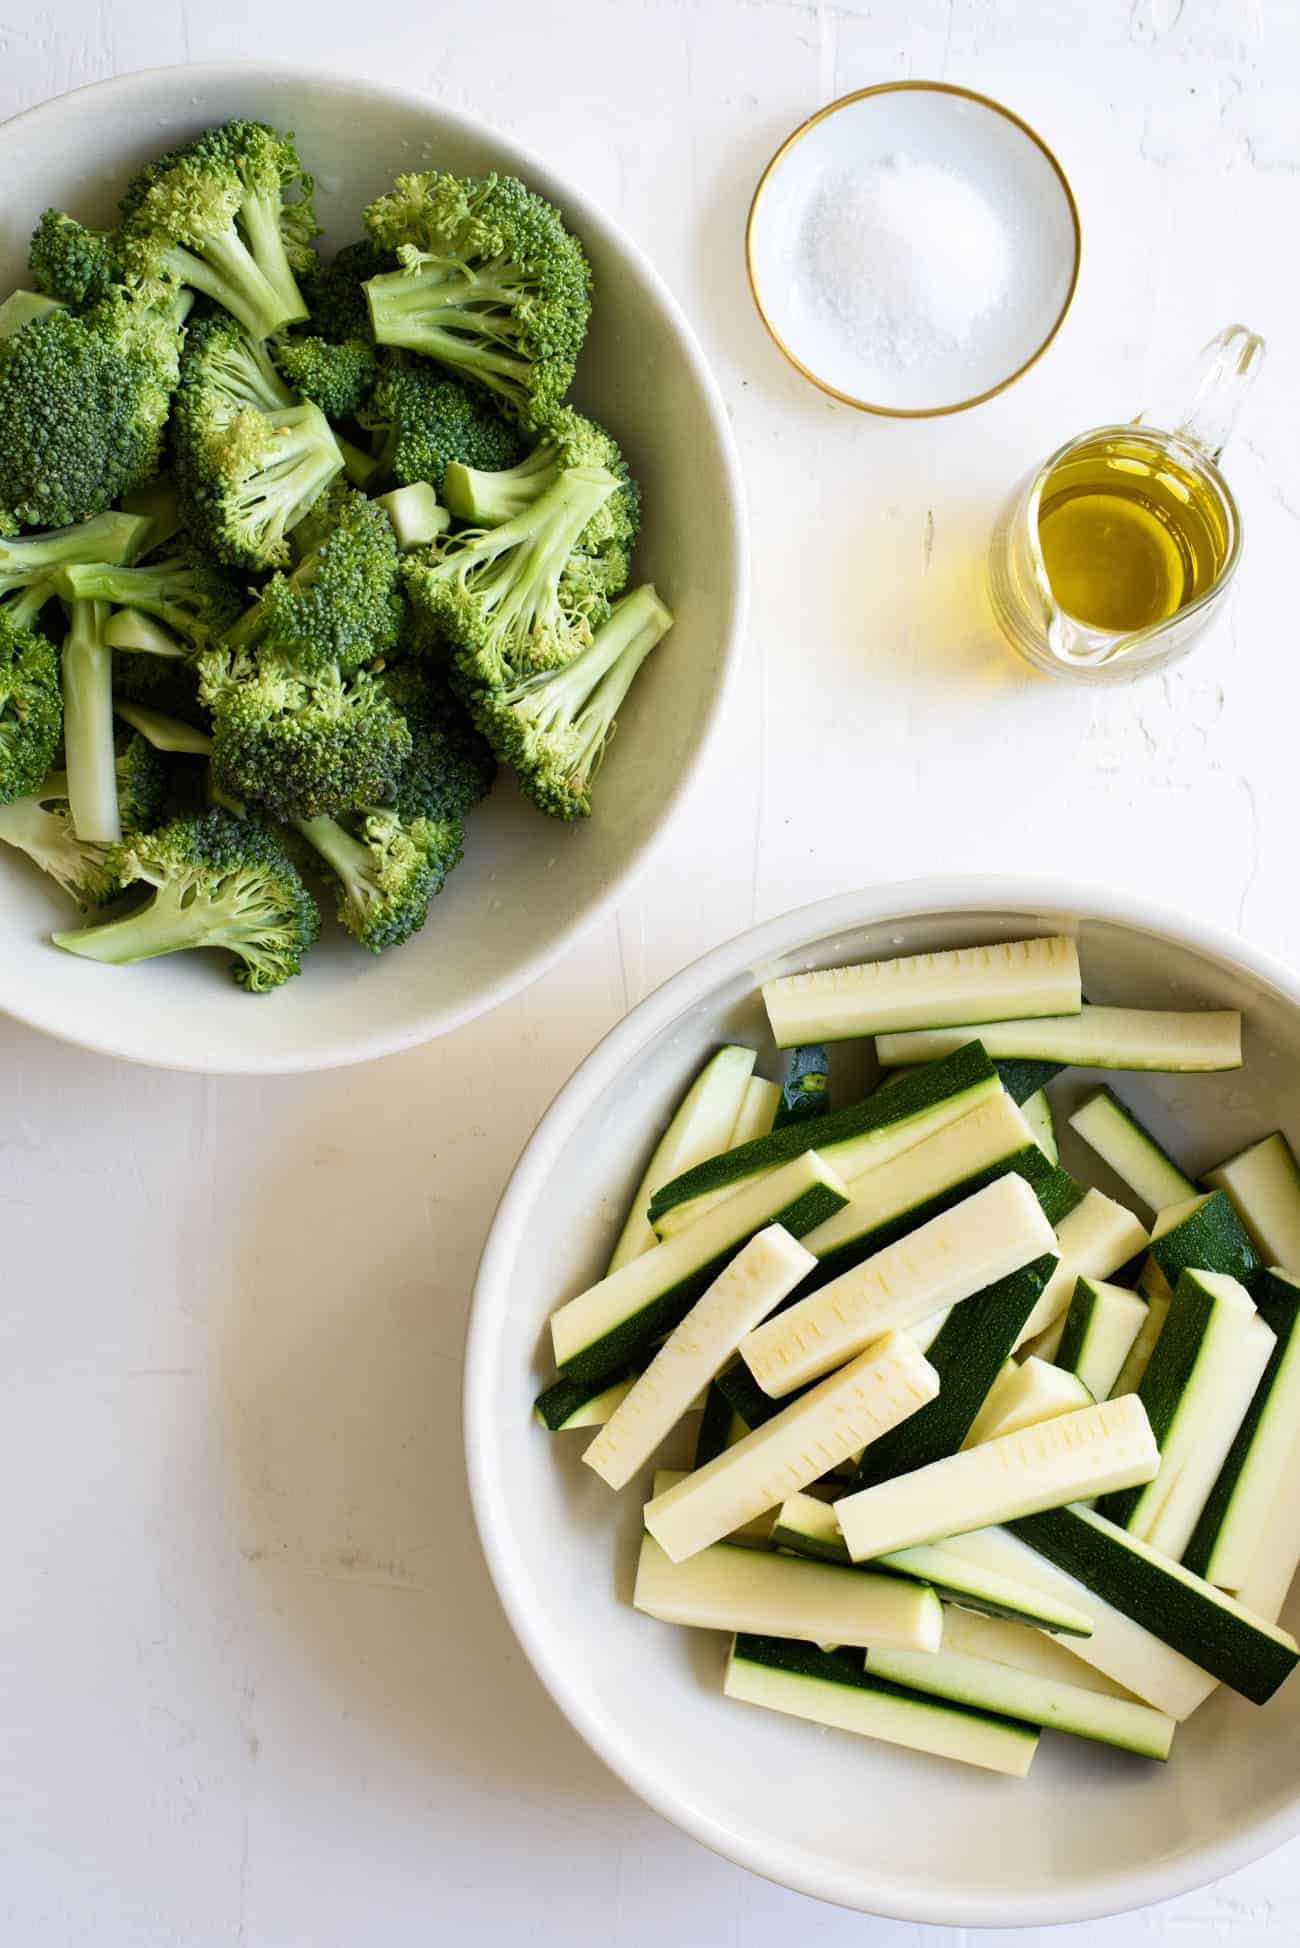 Bowls of broccoli and zucchini on a white table | A guide for How to Saute Vegetables